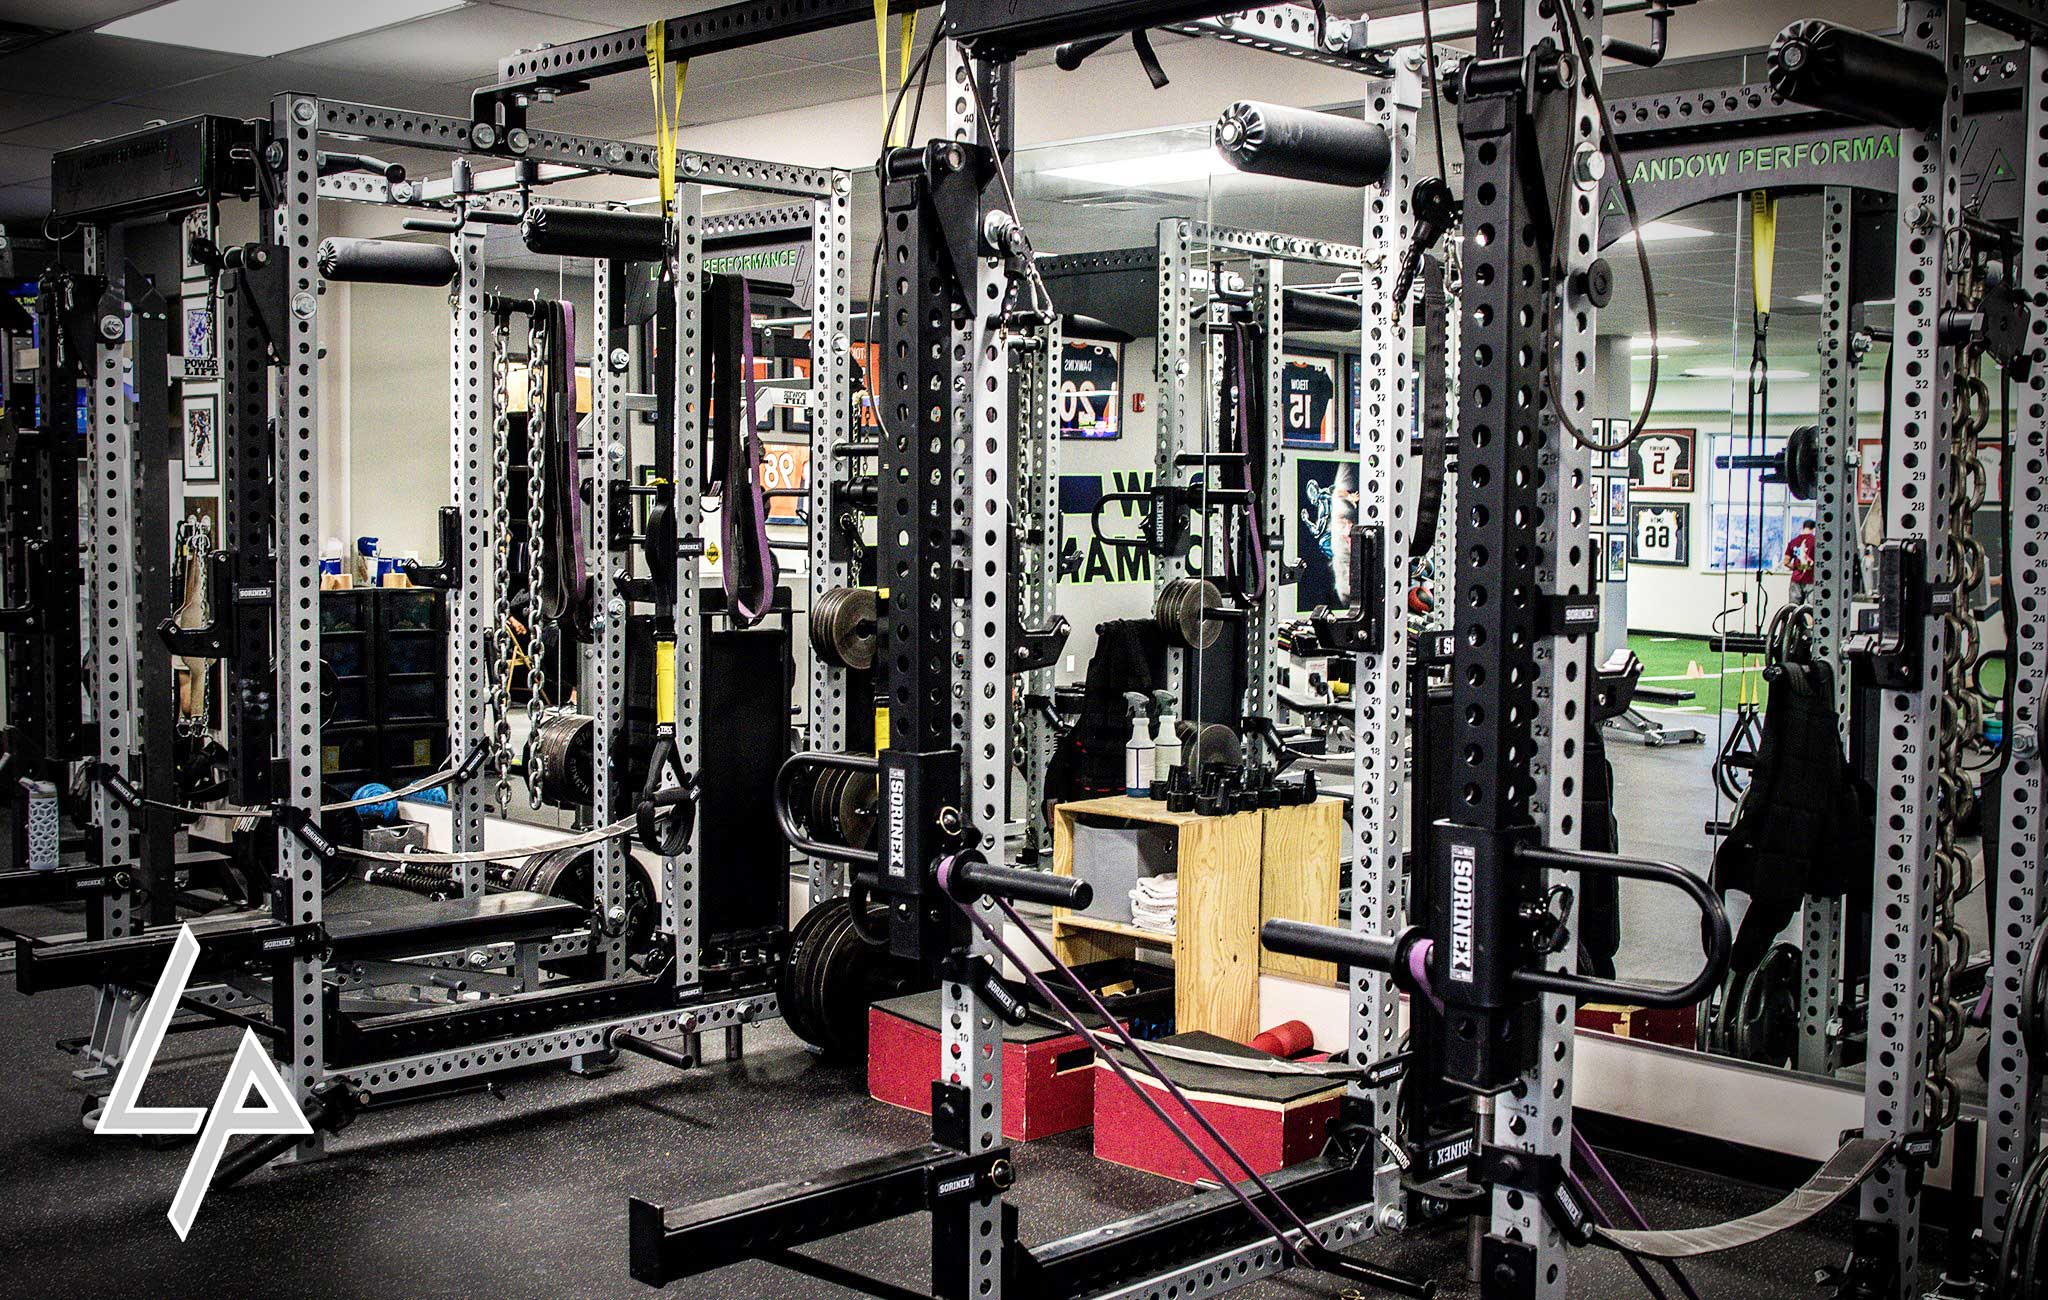 Landow performance Training facility Sorinex